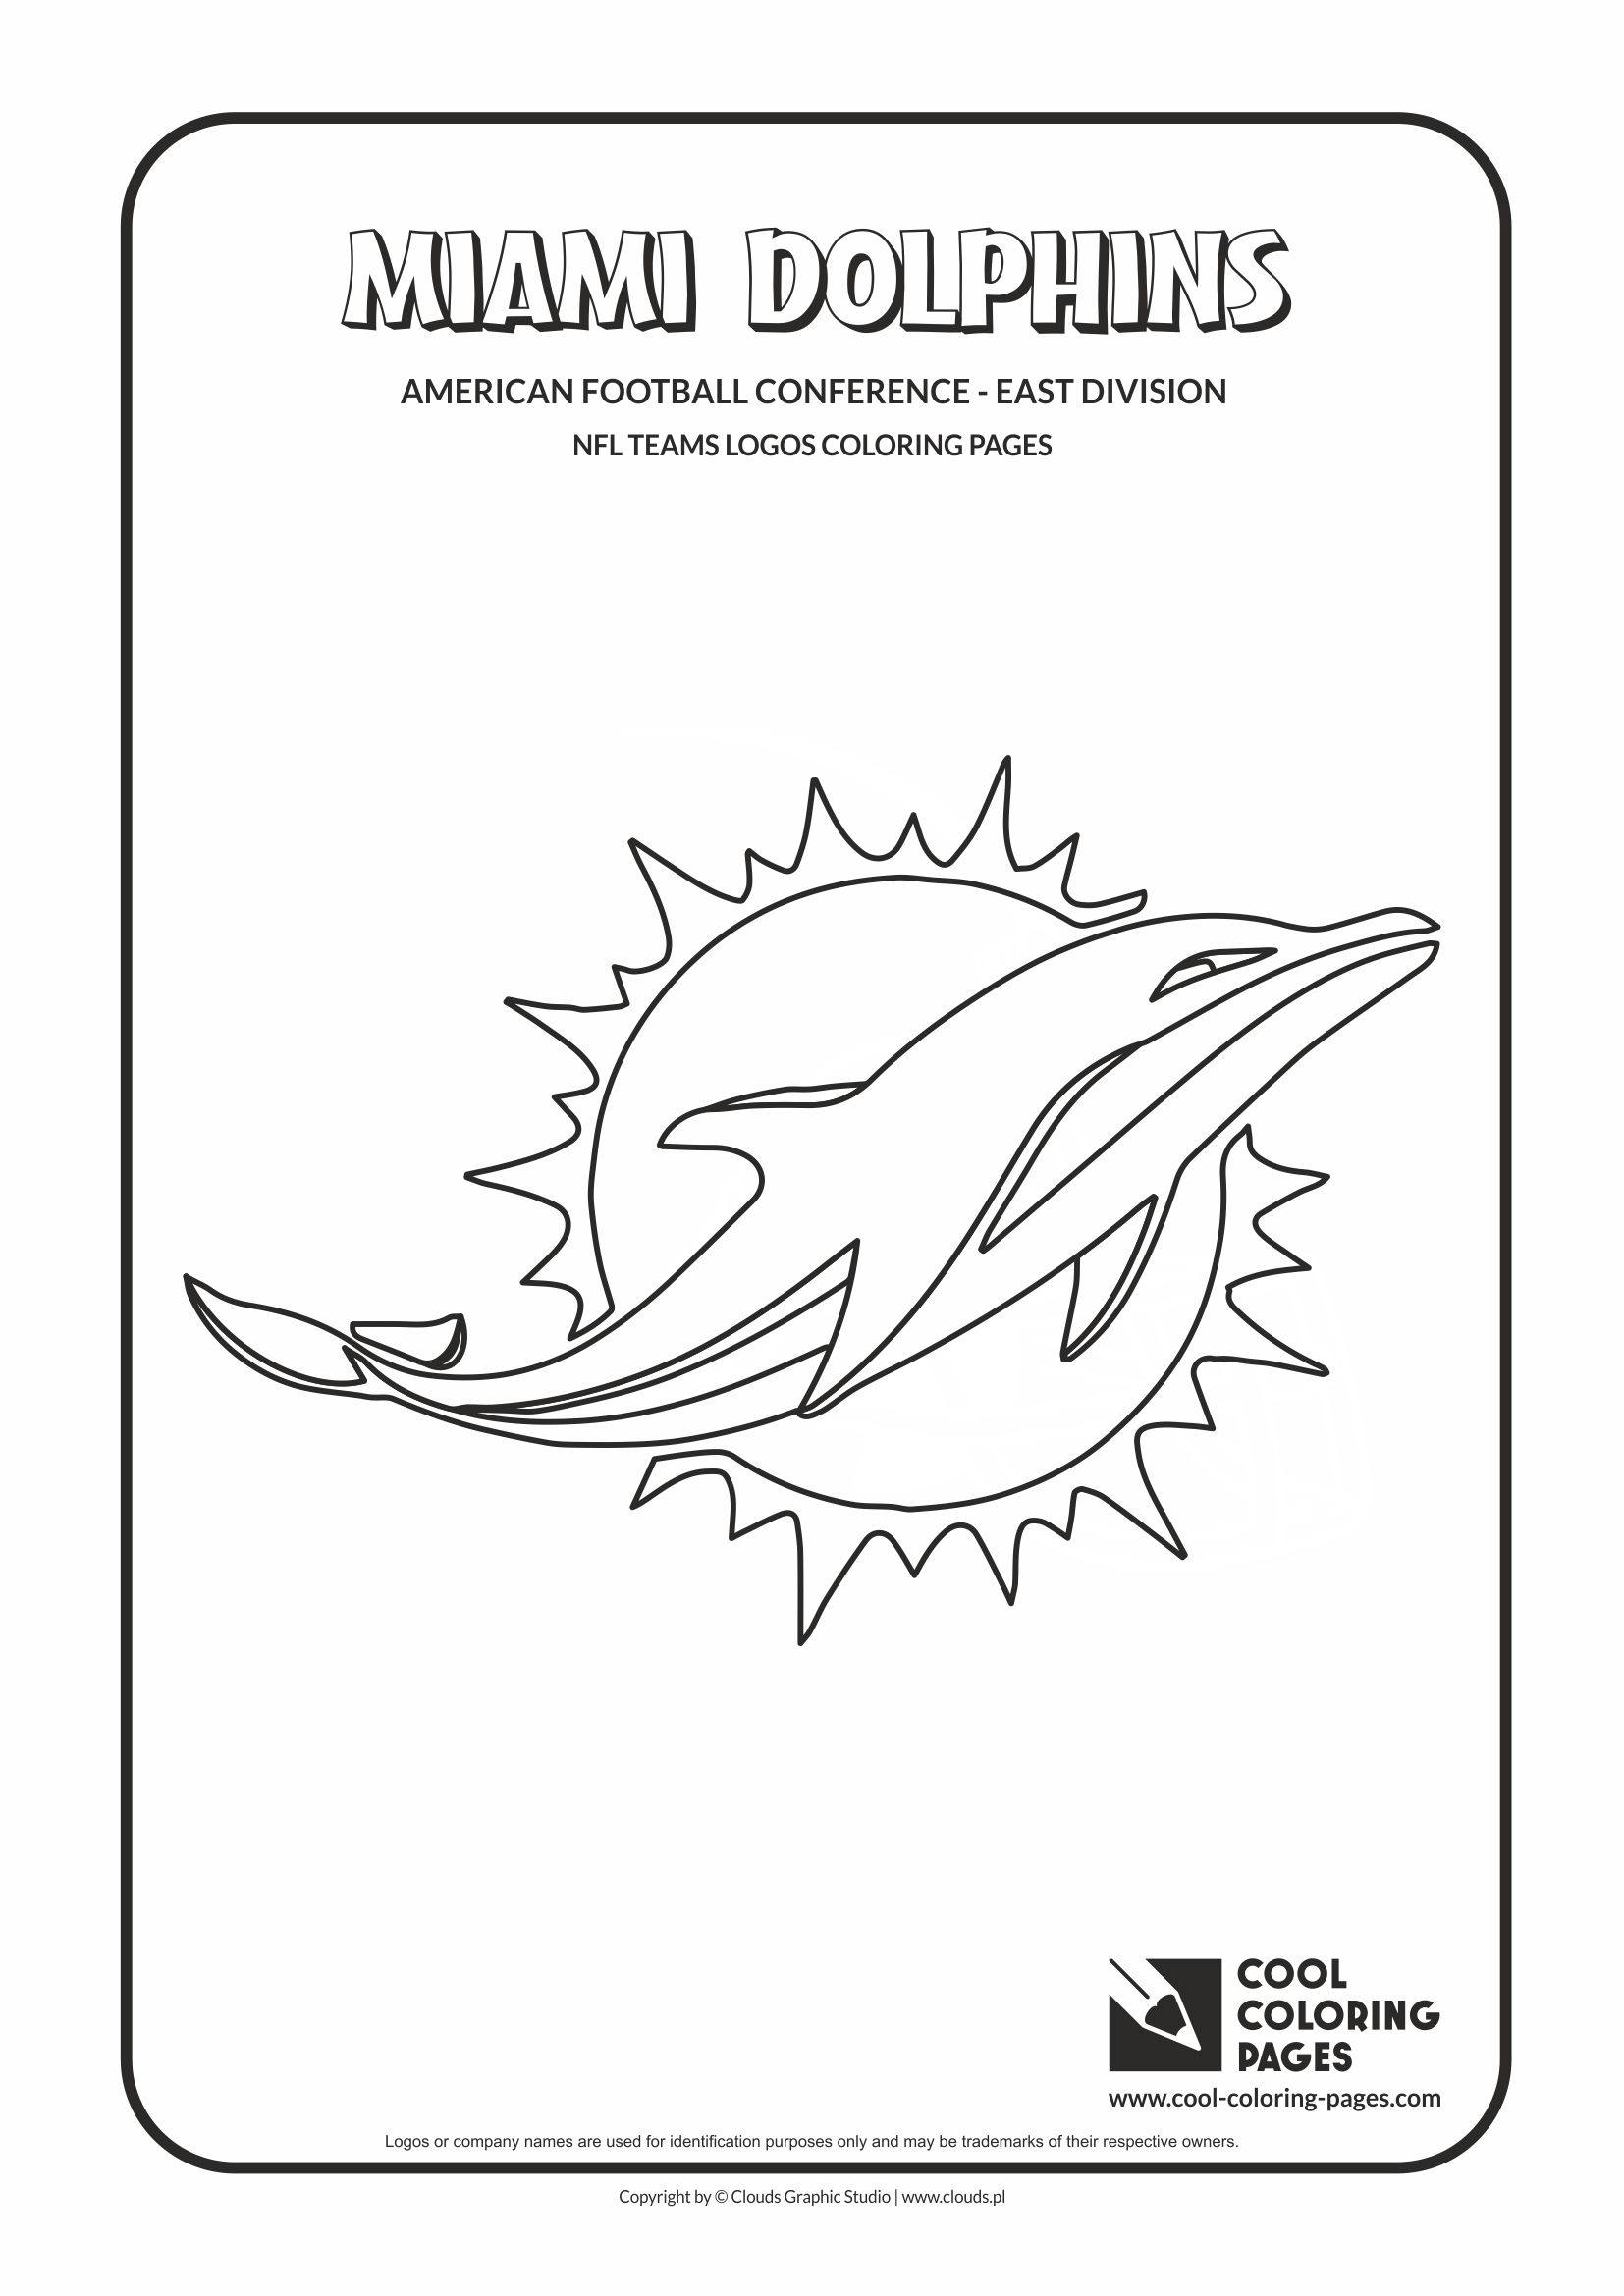 Cool Coloring Pages - NFL American Football Clubs Logos - American Football Conference - East Division / Miami Dolphins logo / Coloring page with Miami Dolphins logo